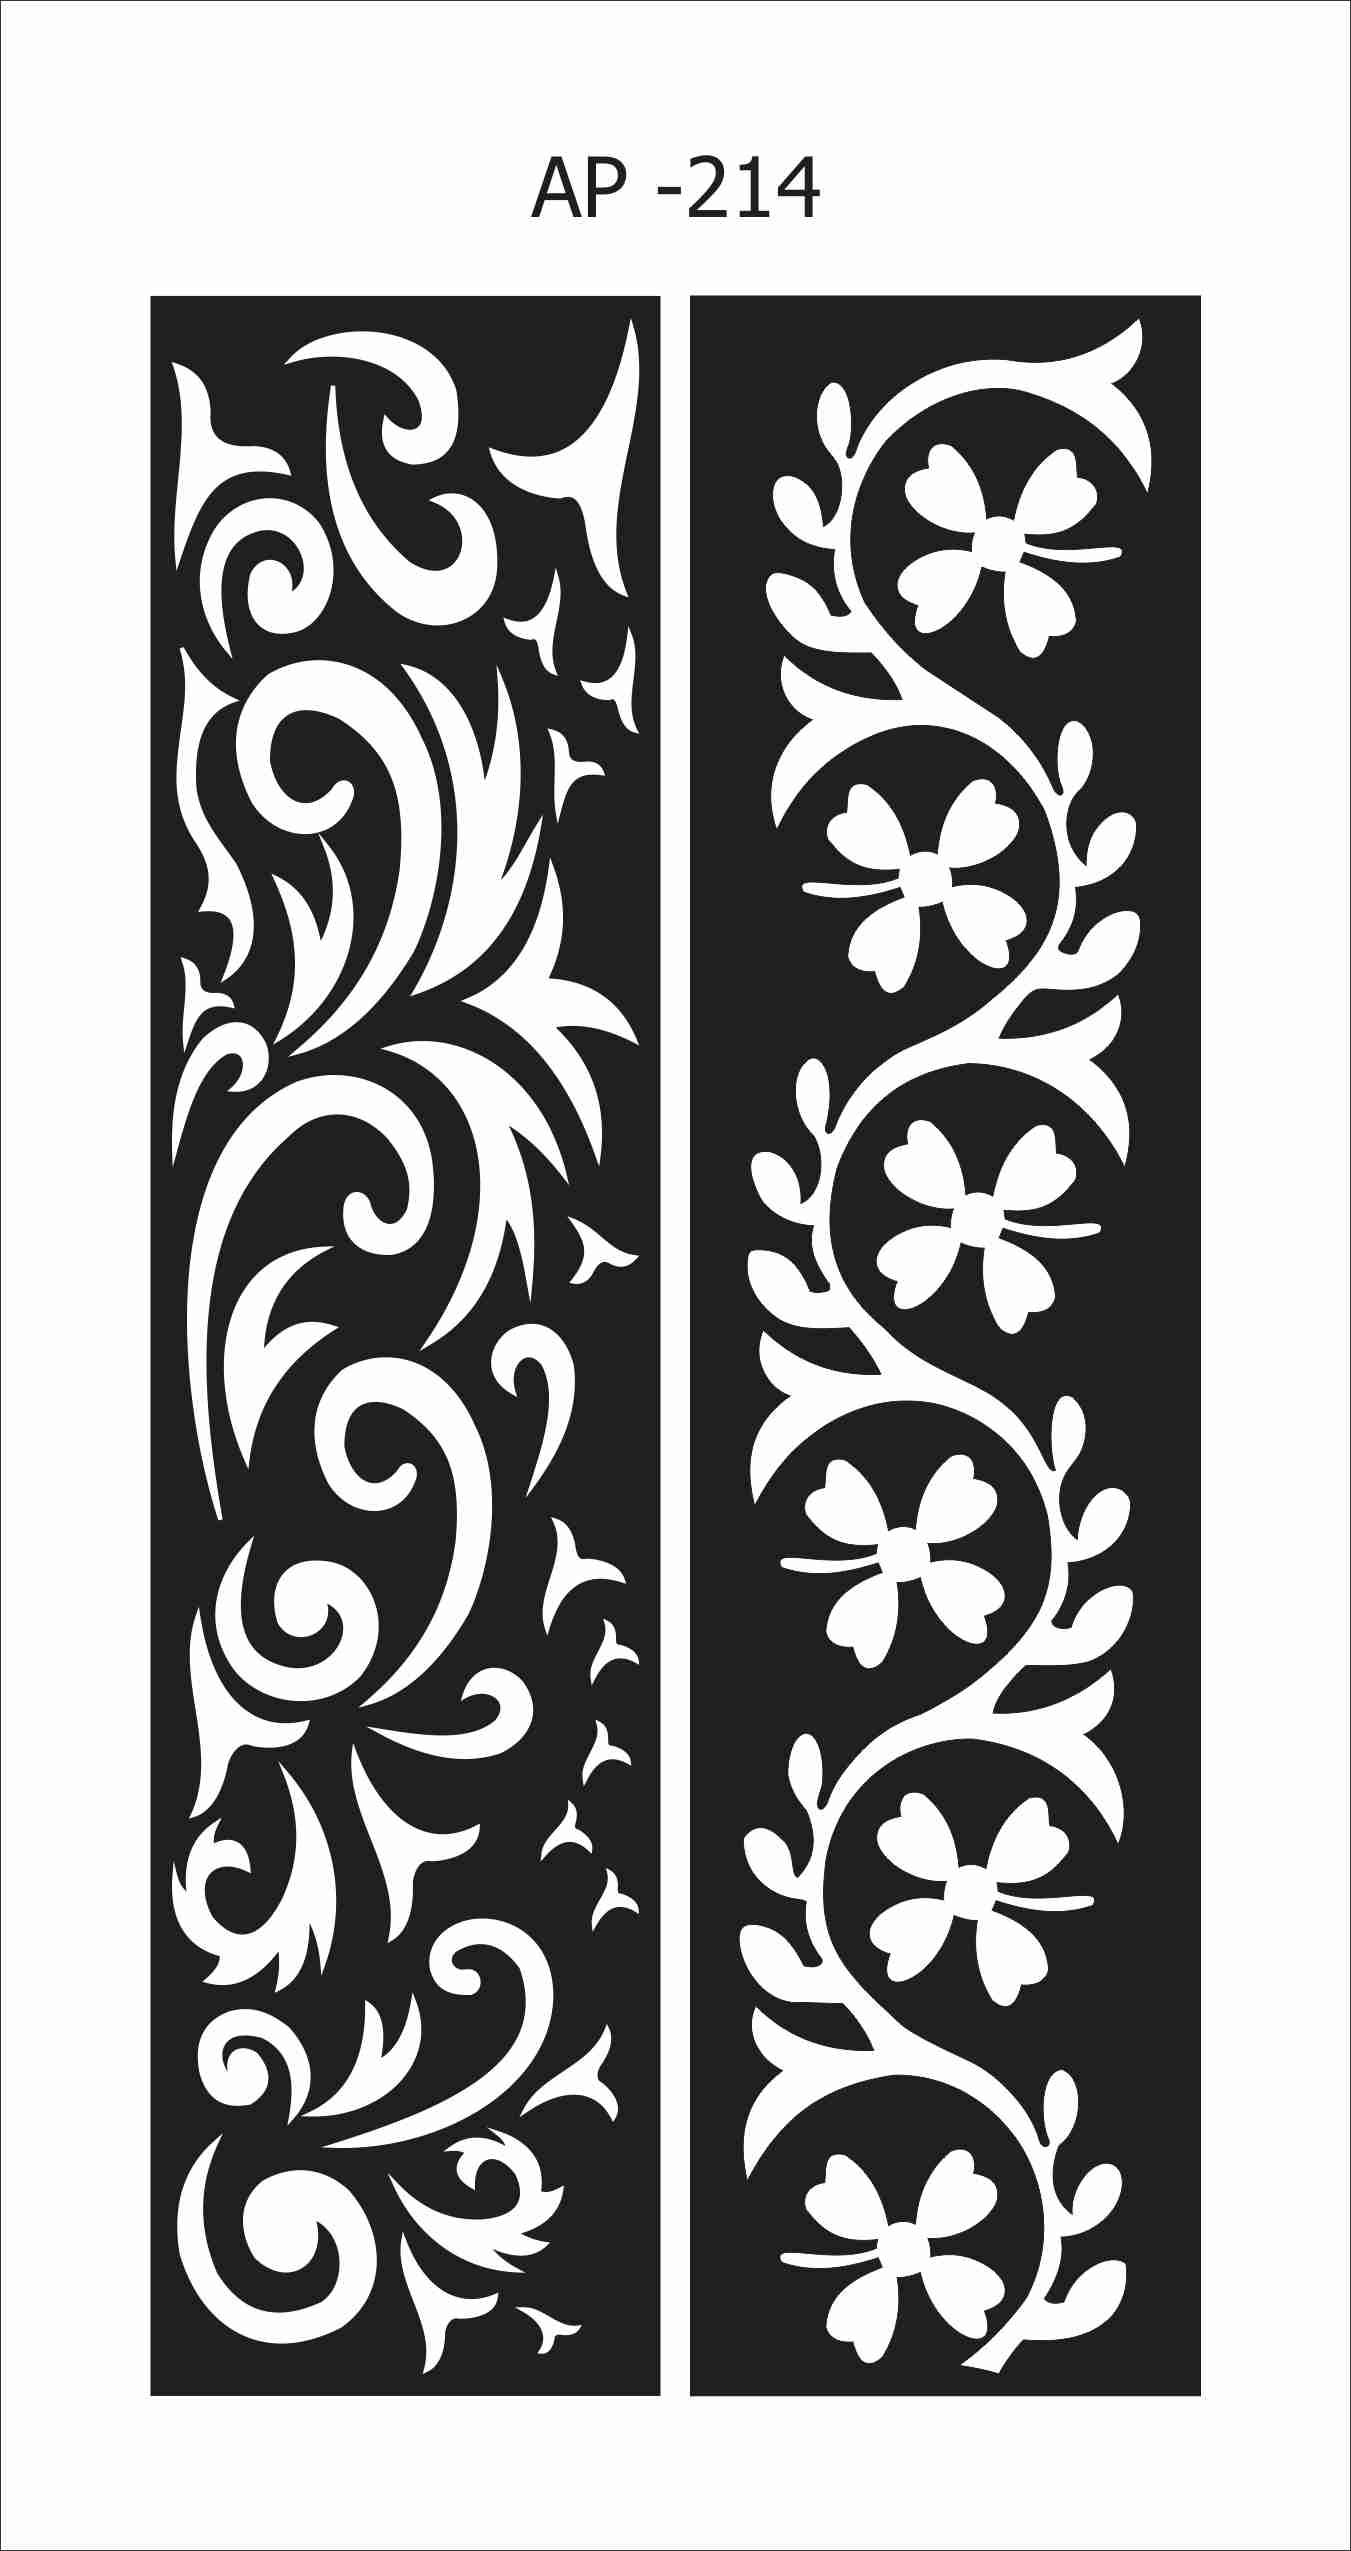 CNC CUTTING DESIGNS Mobile No9815602994 By SATYAM